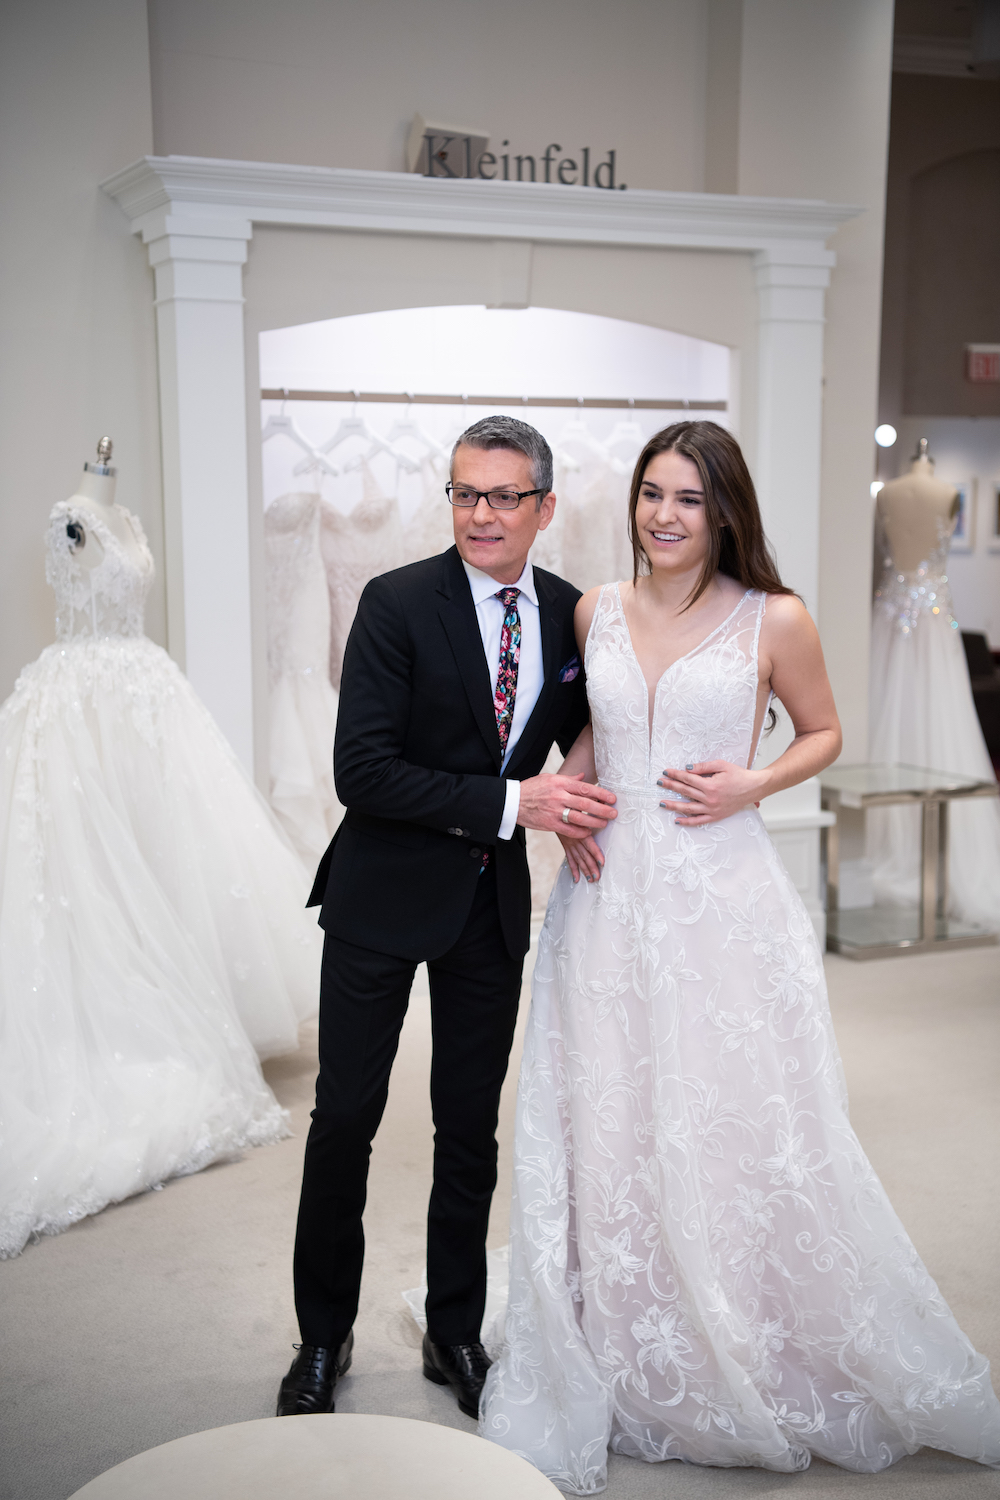 TLC Star of Say Yes To The Dress and Bridal Designer Randy Fenoli photography by Jamie Levine Photography